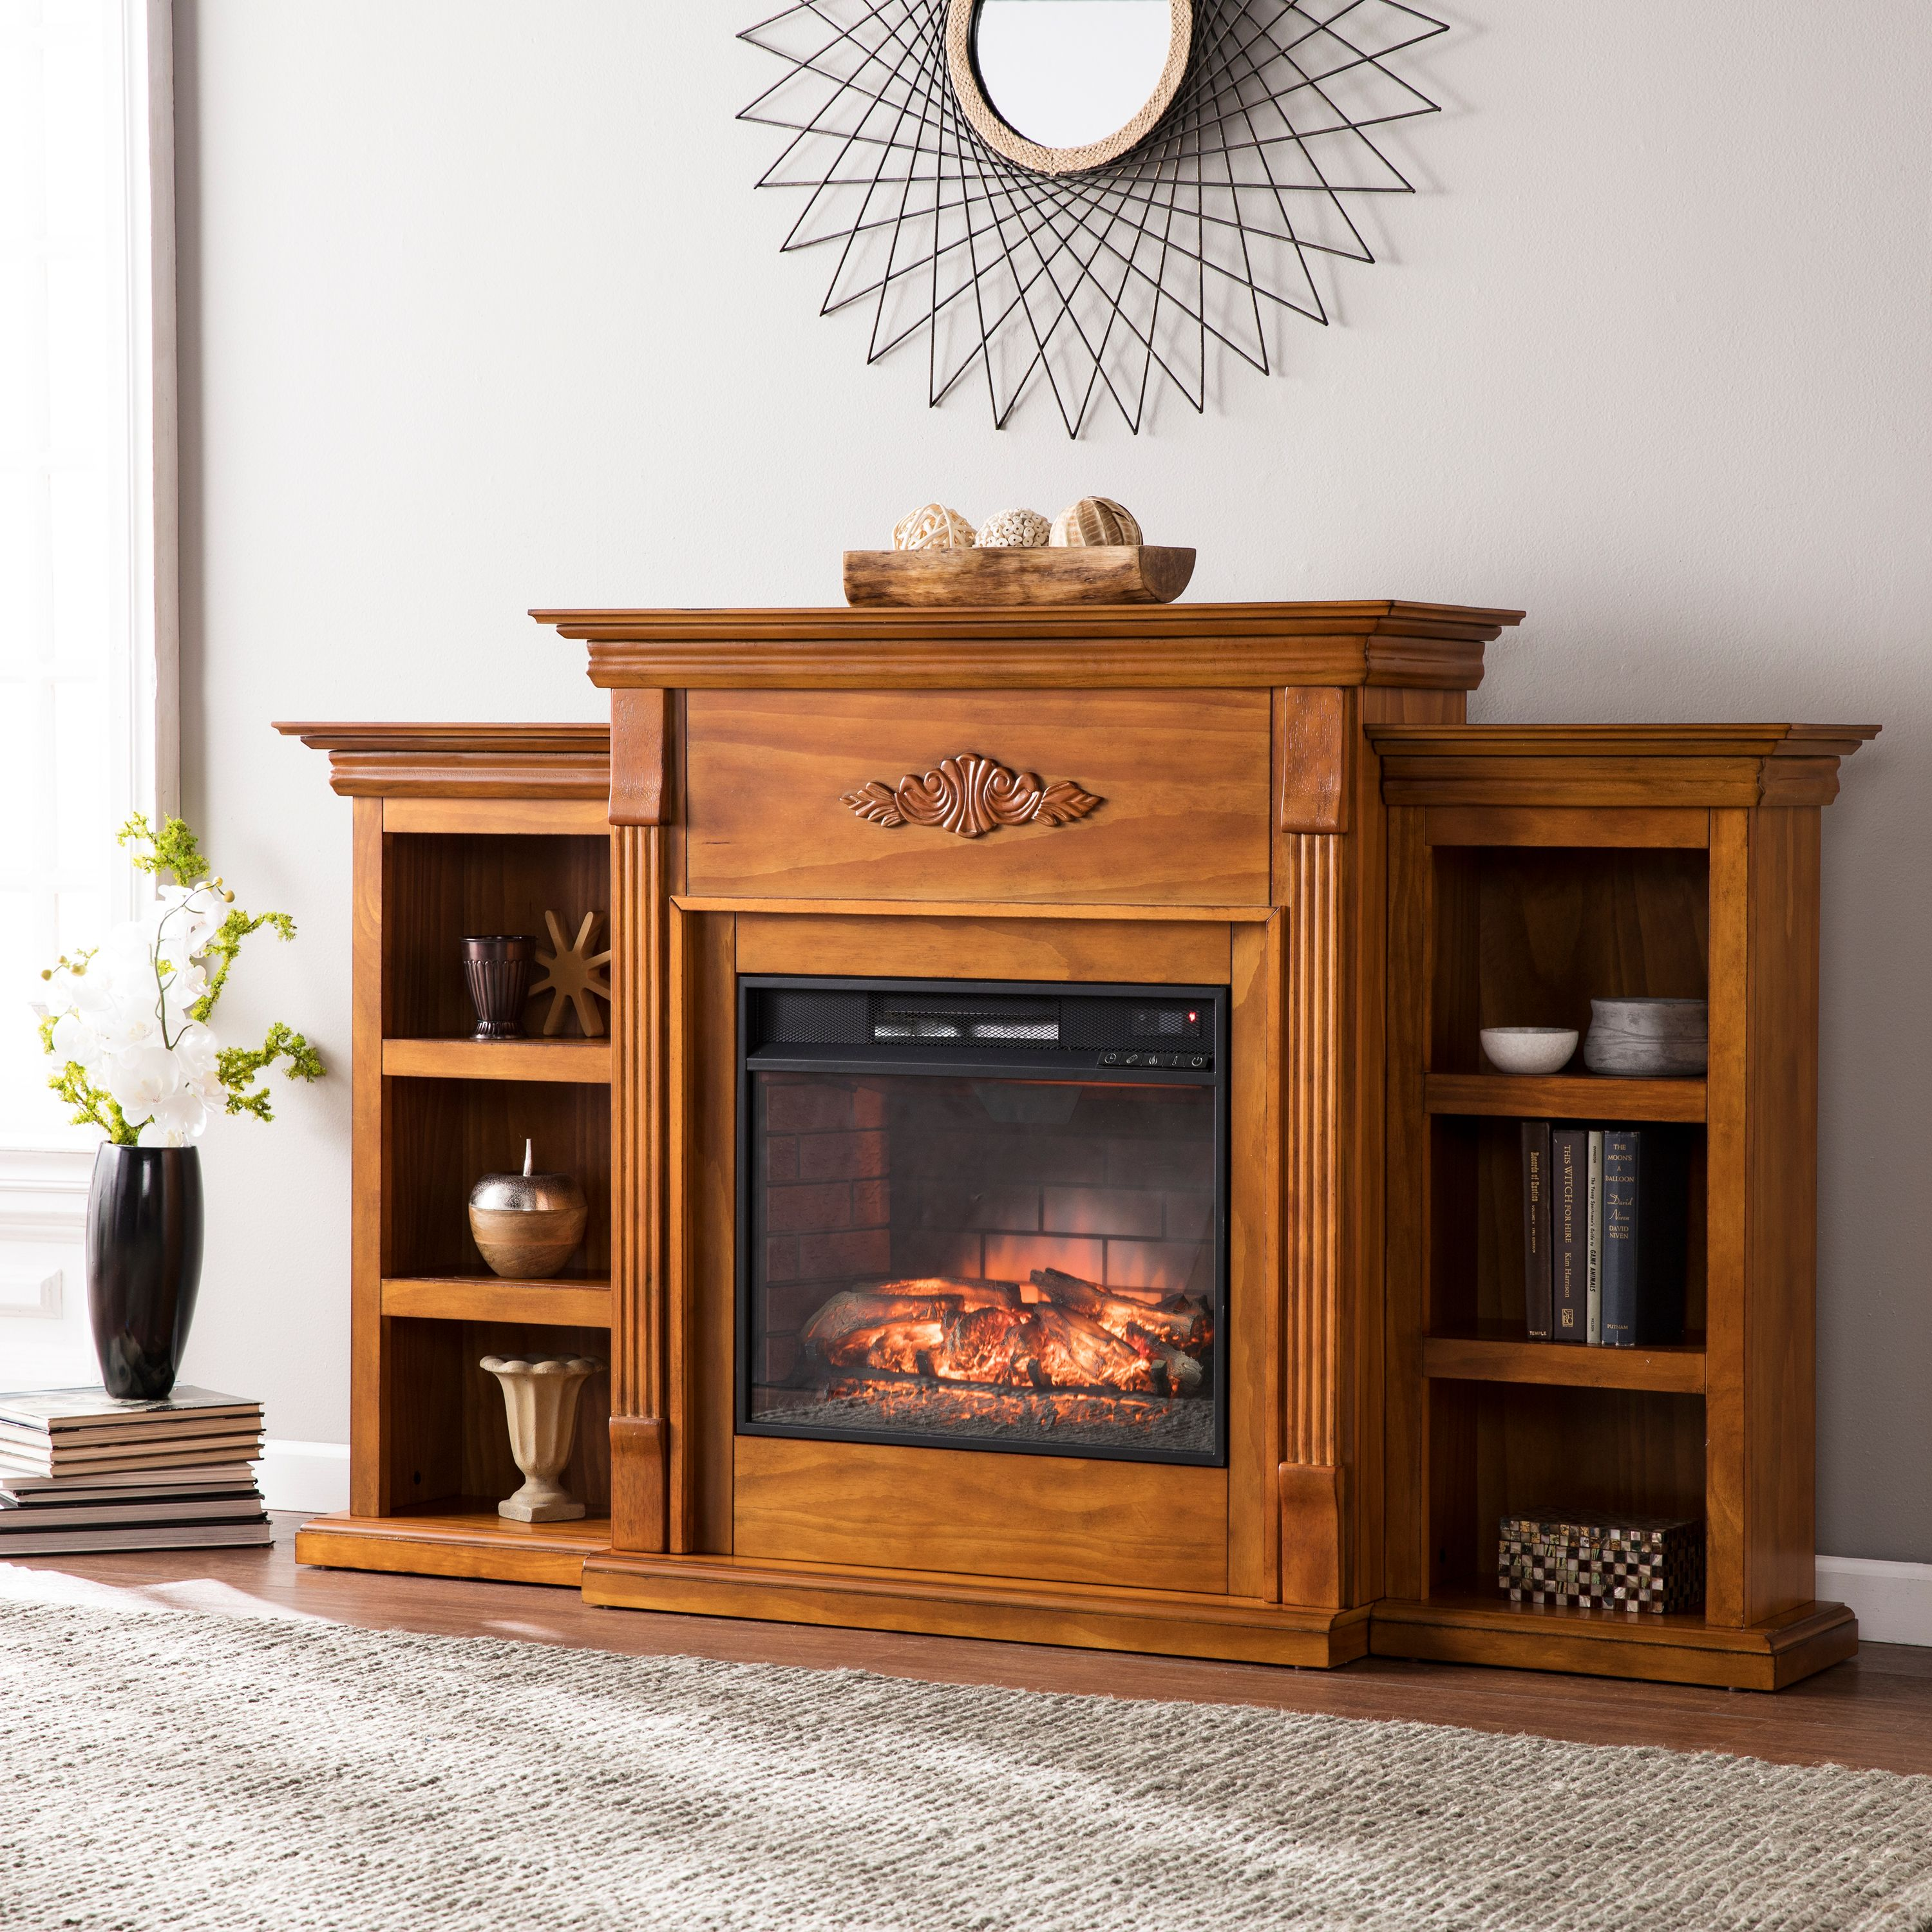 """Griffin Infrared Electric Fireplace with Bookcases, For TV's up to 60"""", Glazed Pine"""